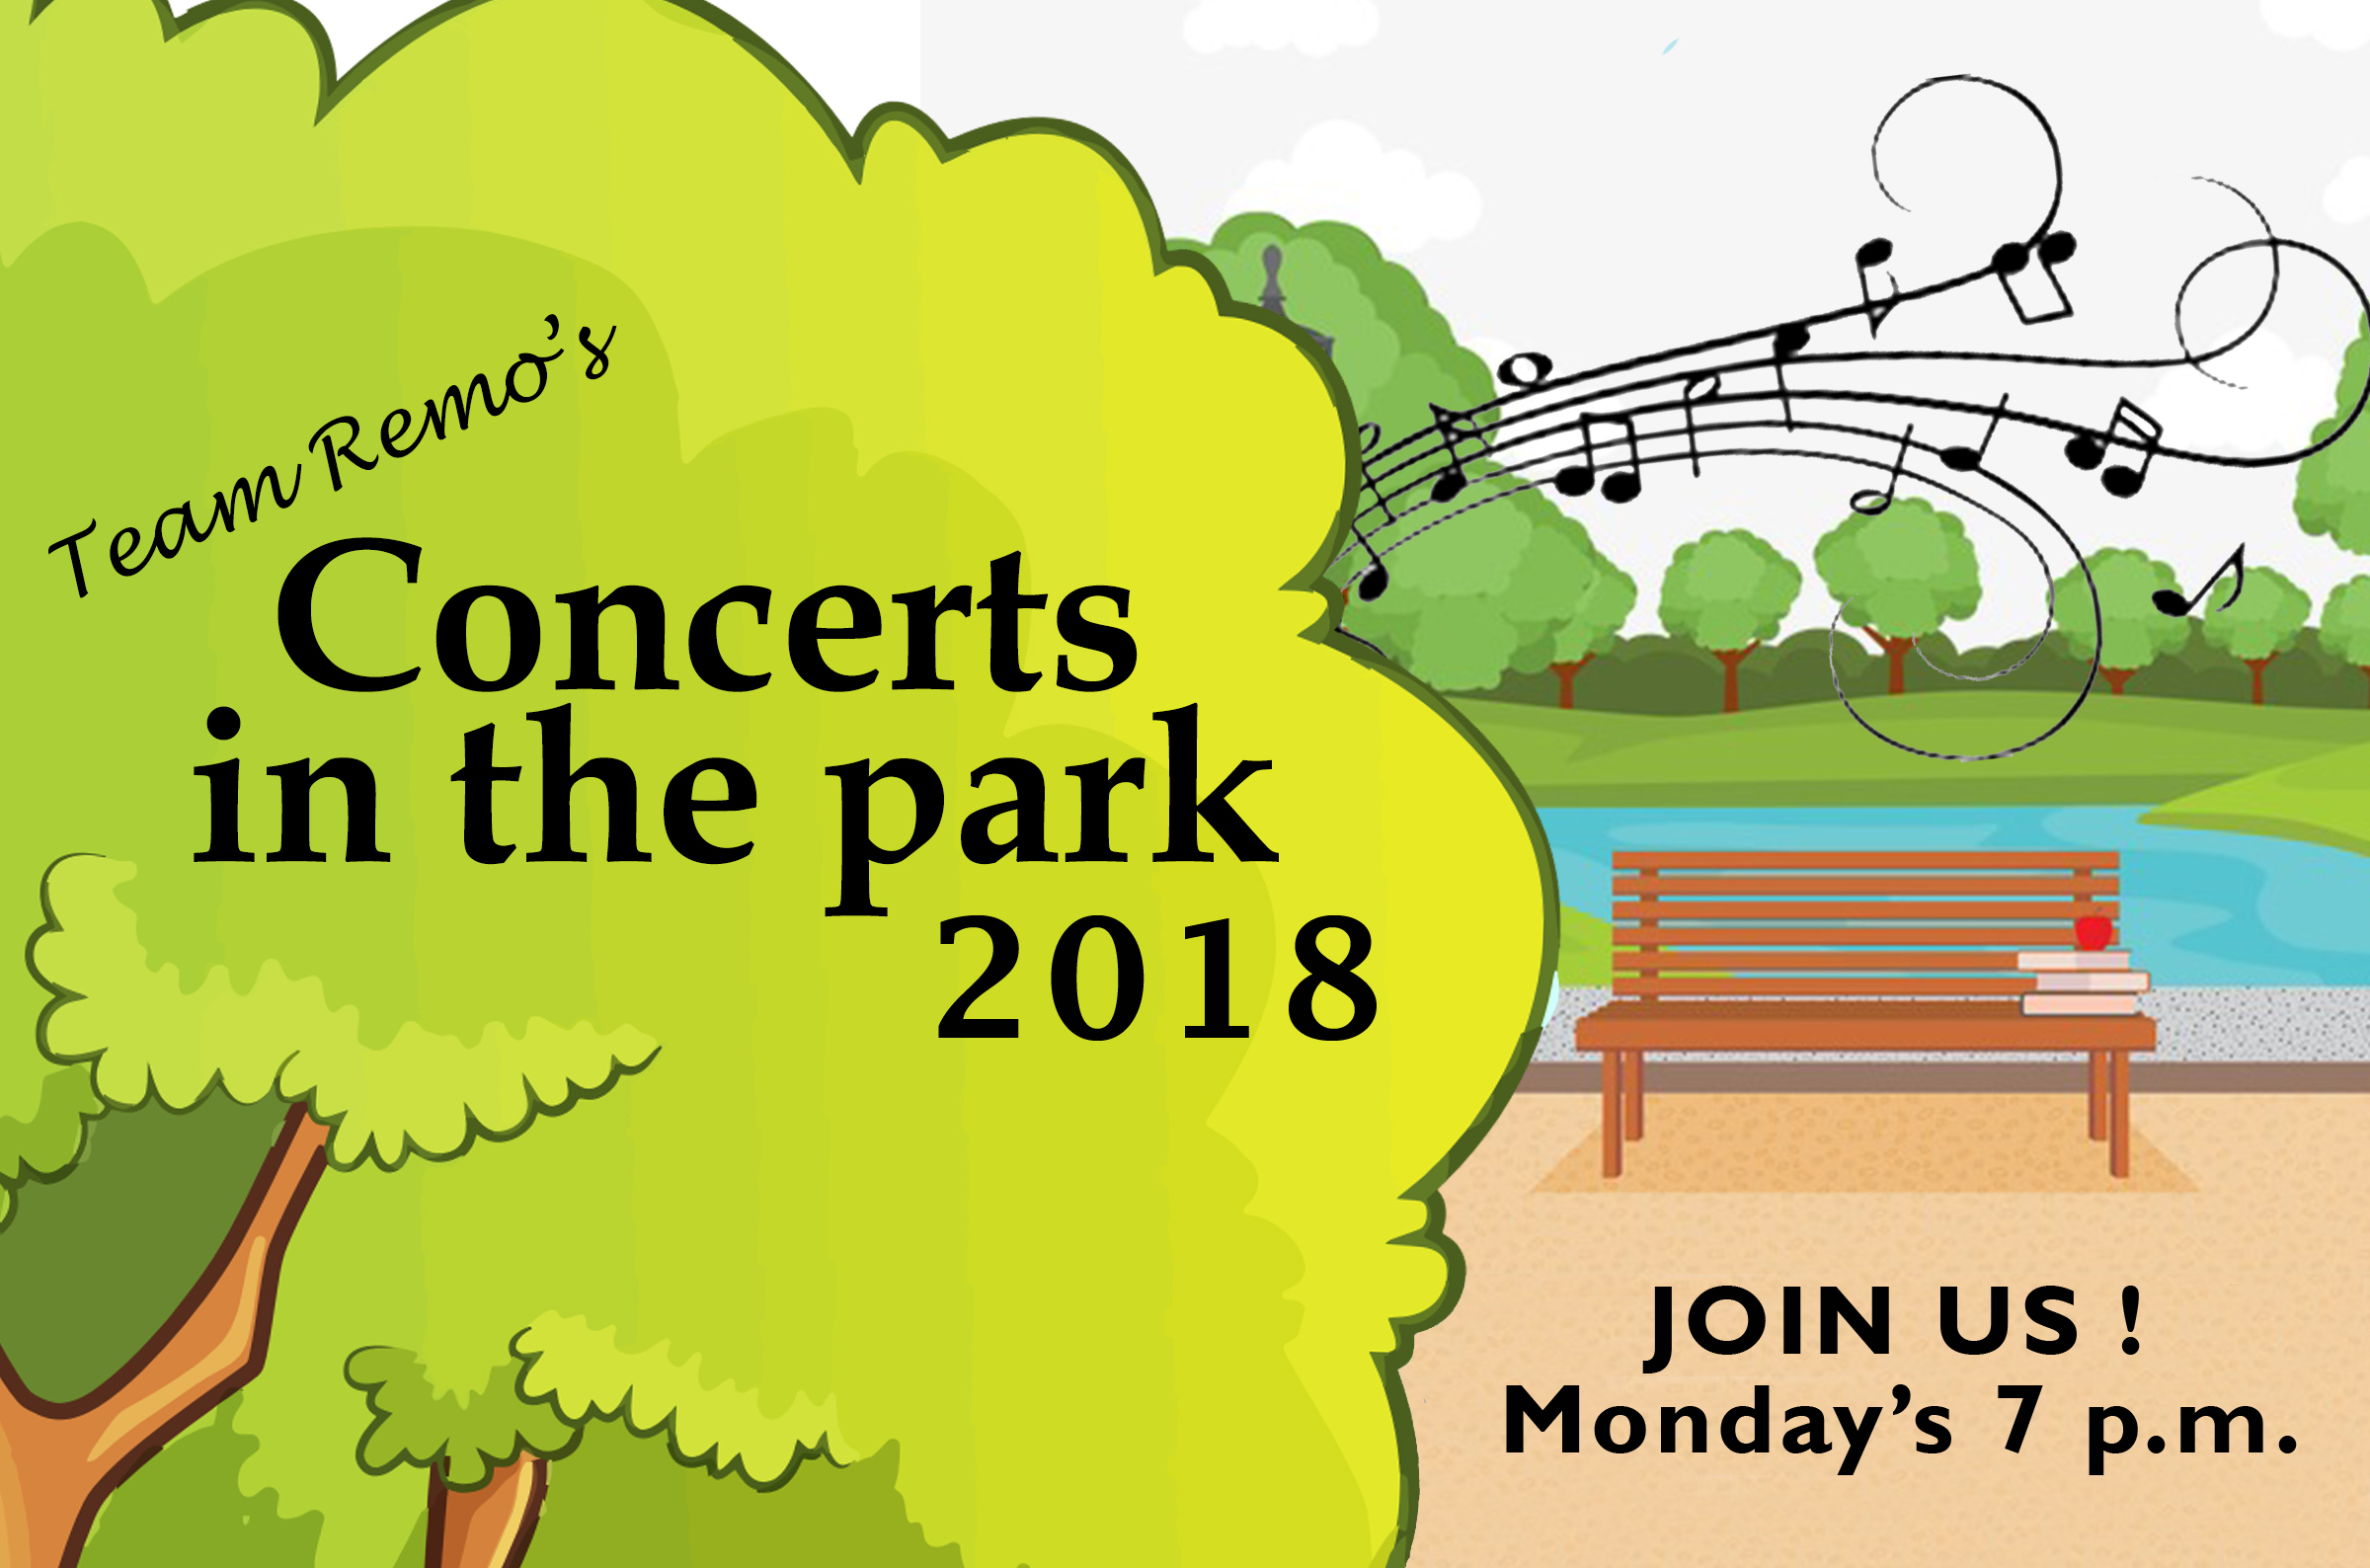 Concerts in the park 2018.jpg